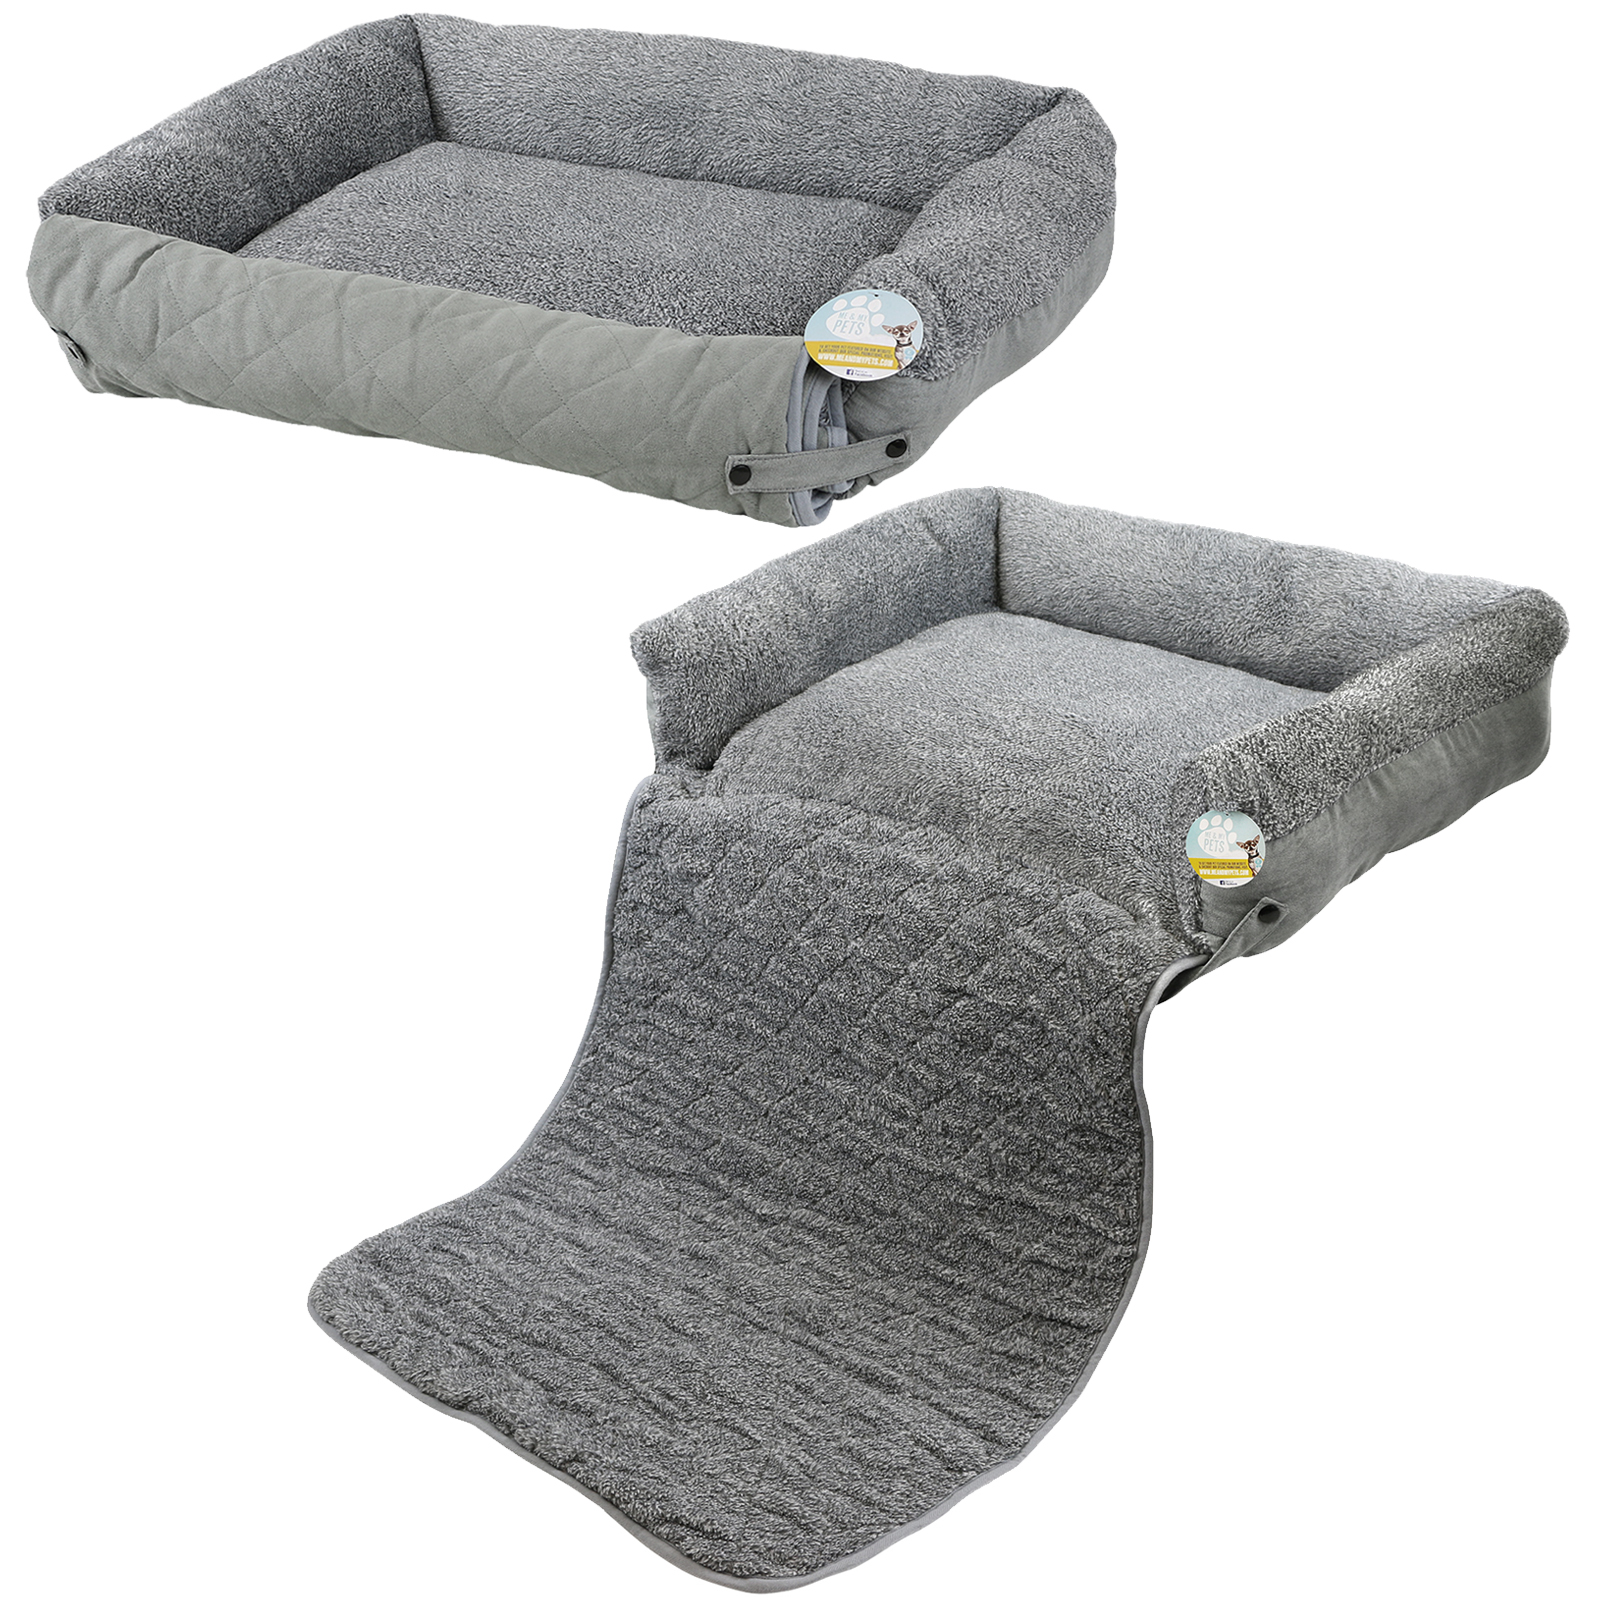 Grey Dog Bed Sofa : Me my pet quilted grey fleece fold out cat dog bed sofa